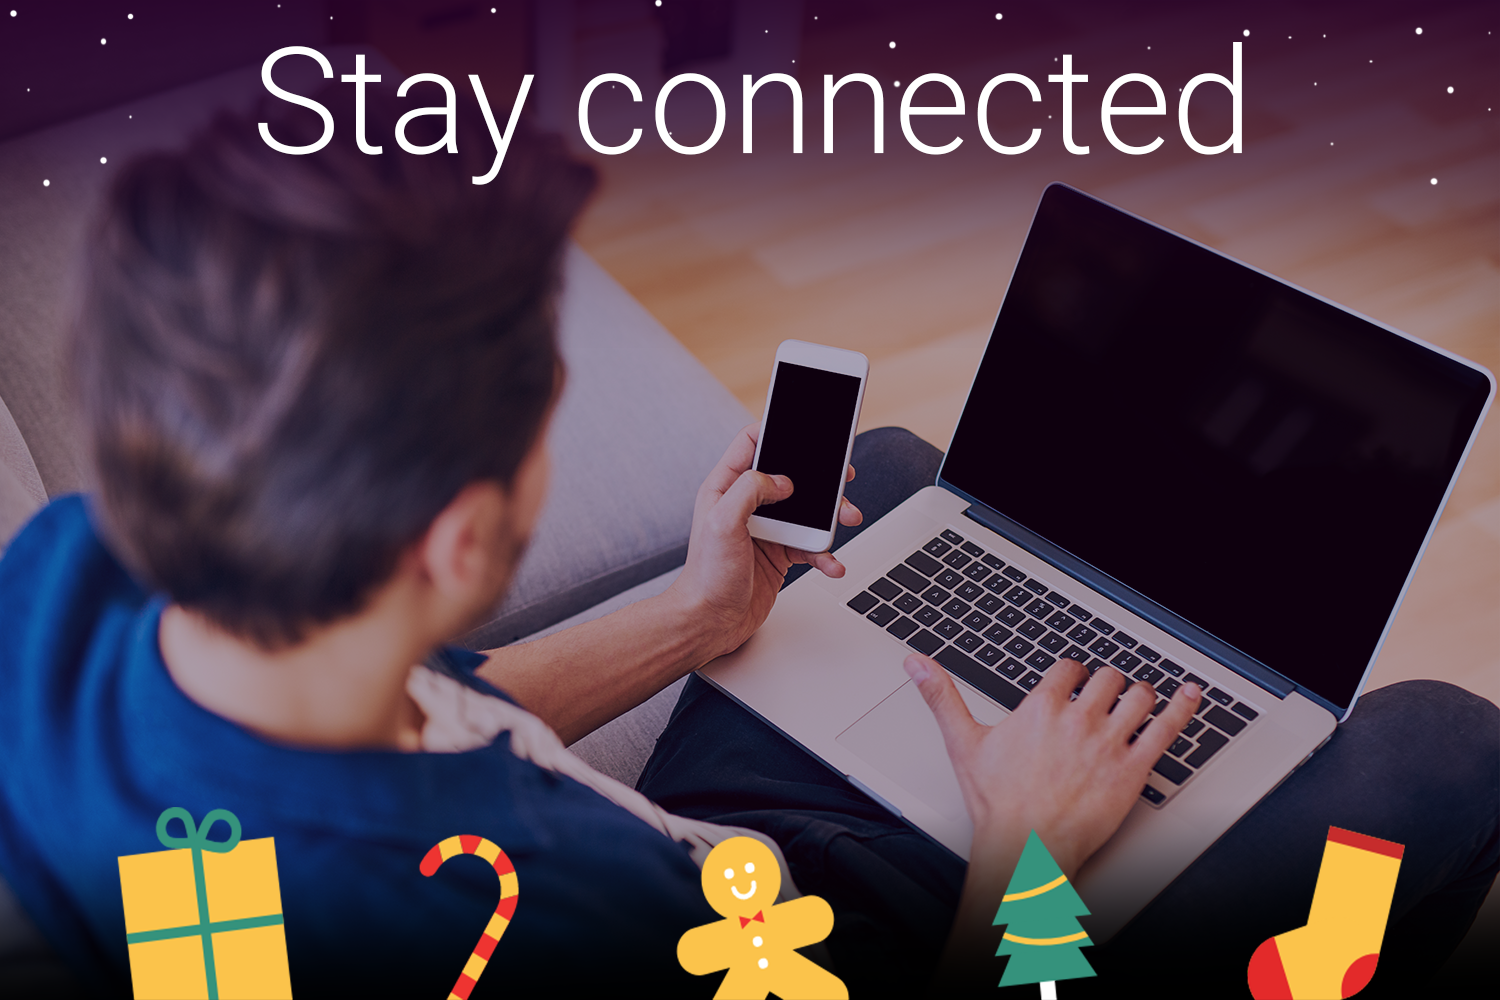 Stay connected with top tech offers>